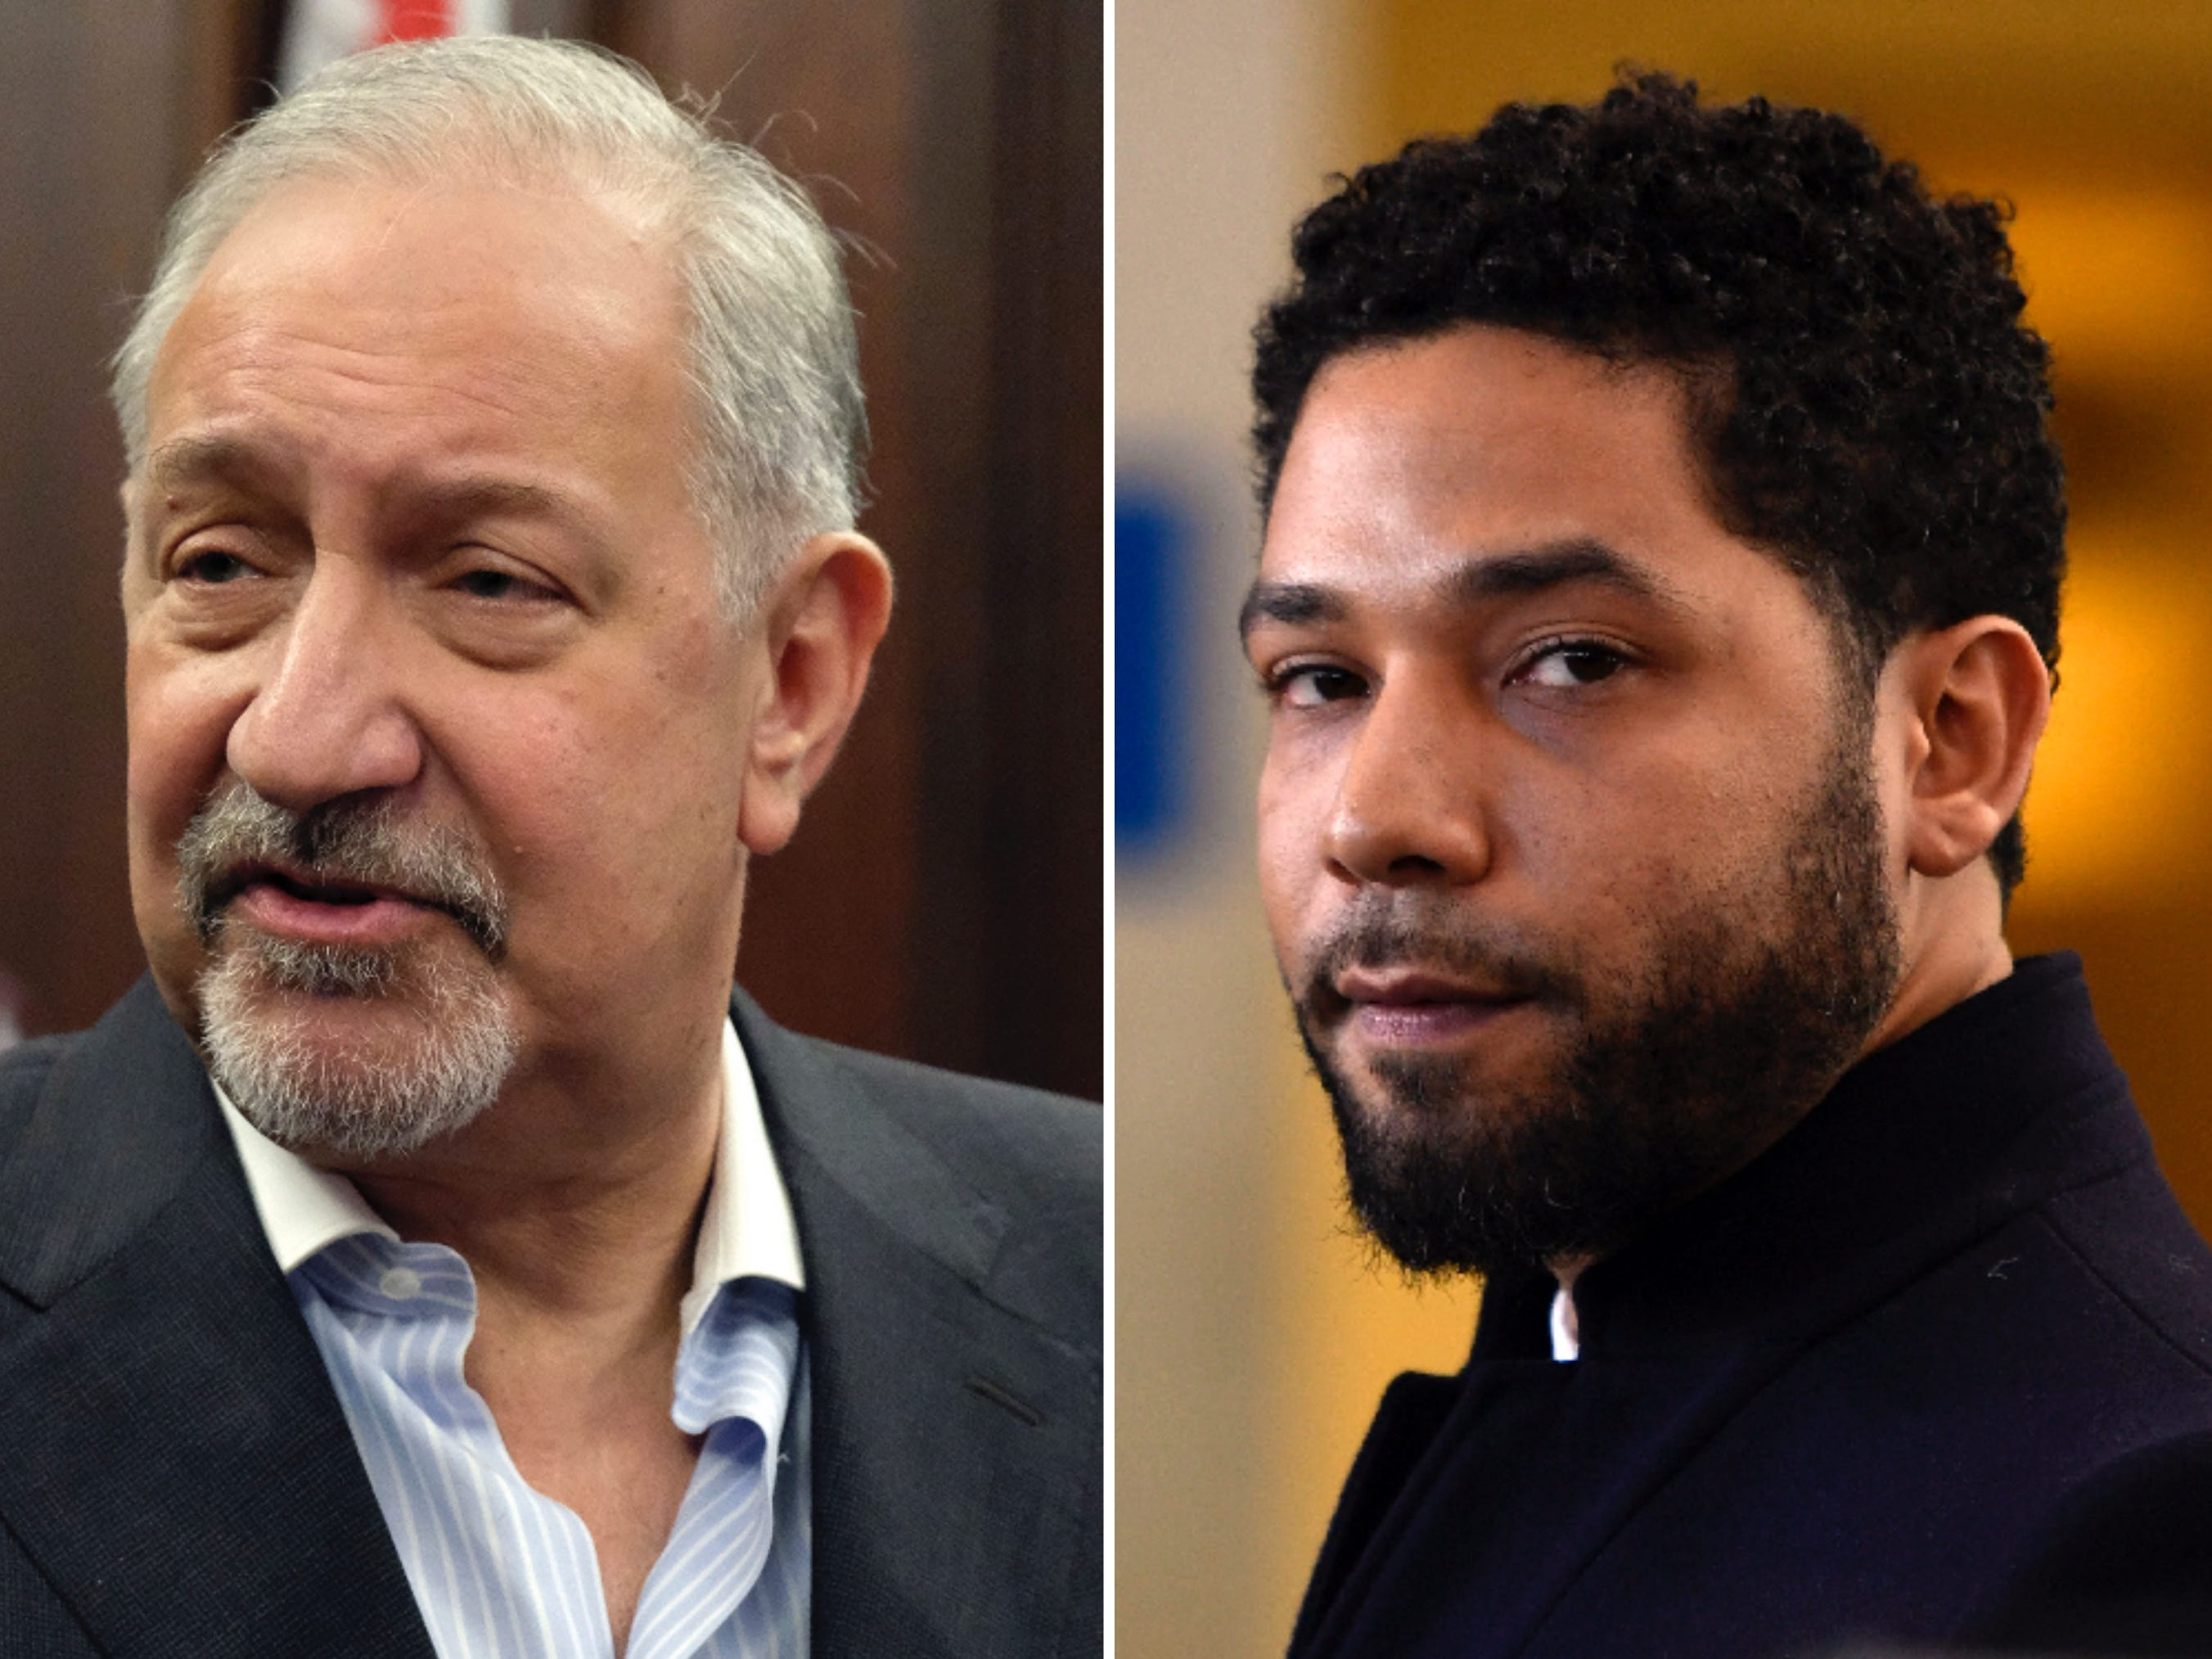 Jussie Smollett case: Brothers accused of carrying out attack sue actor's legal team for defamation